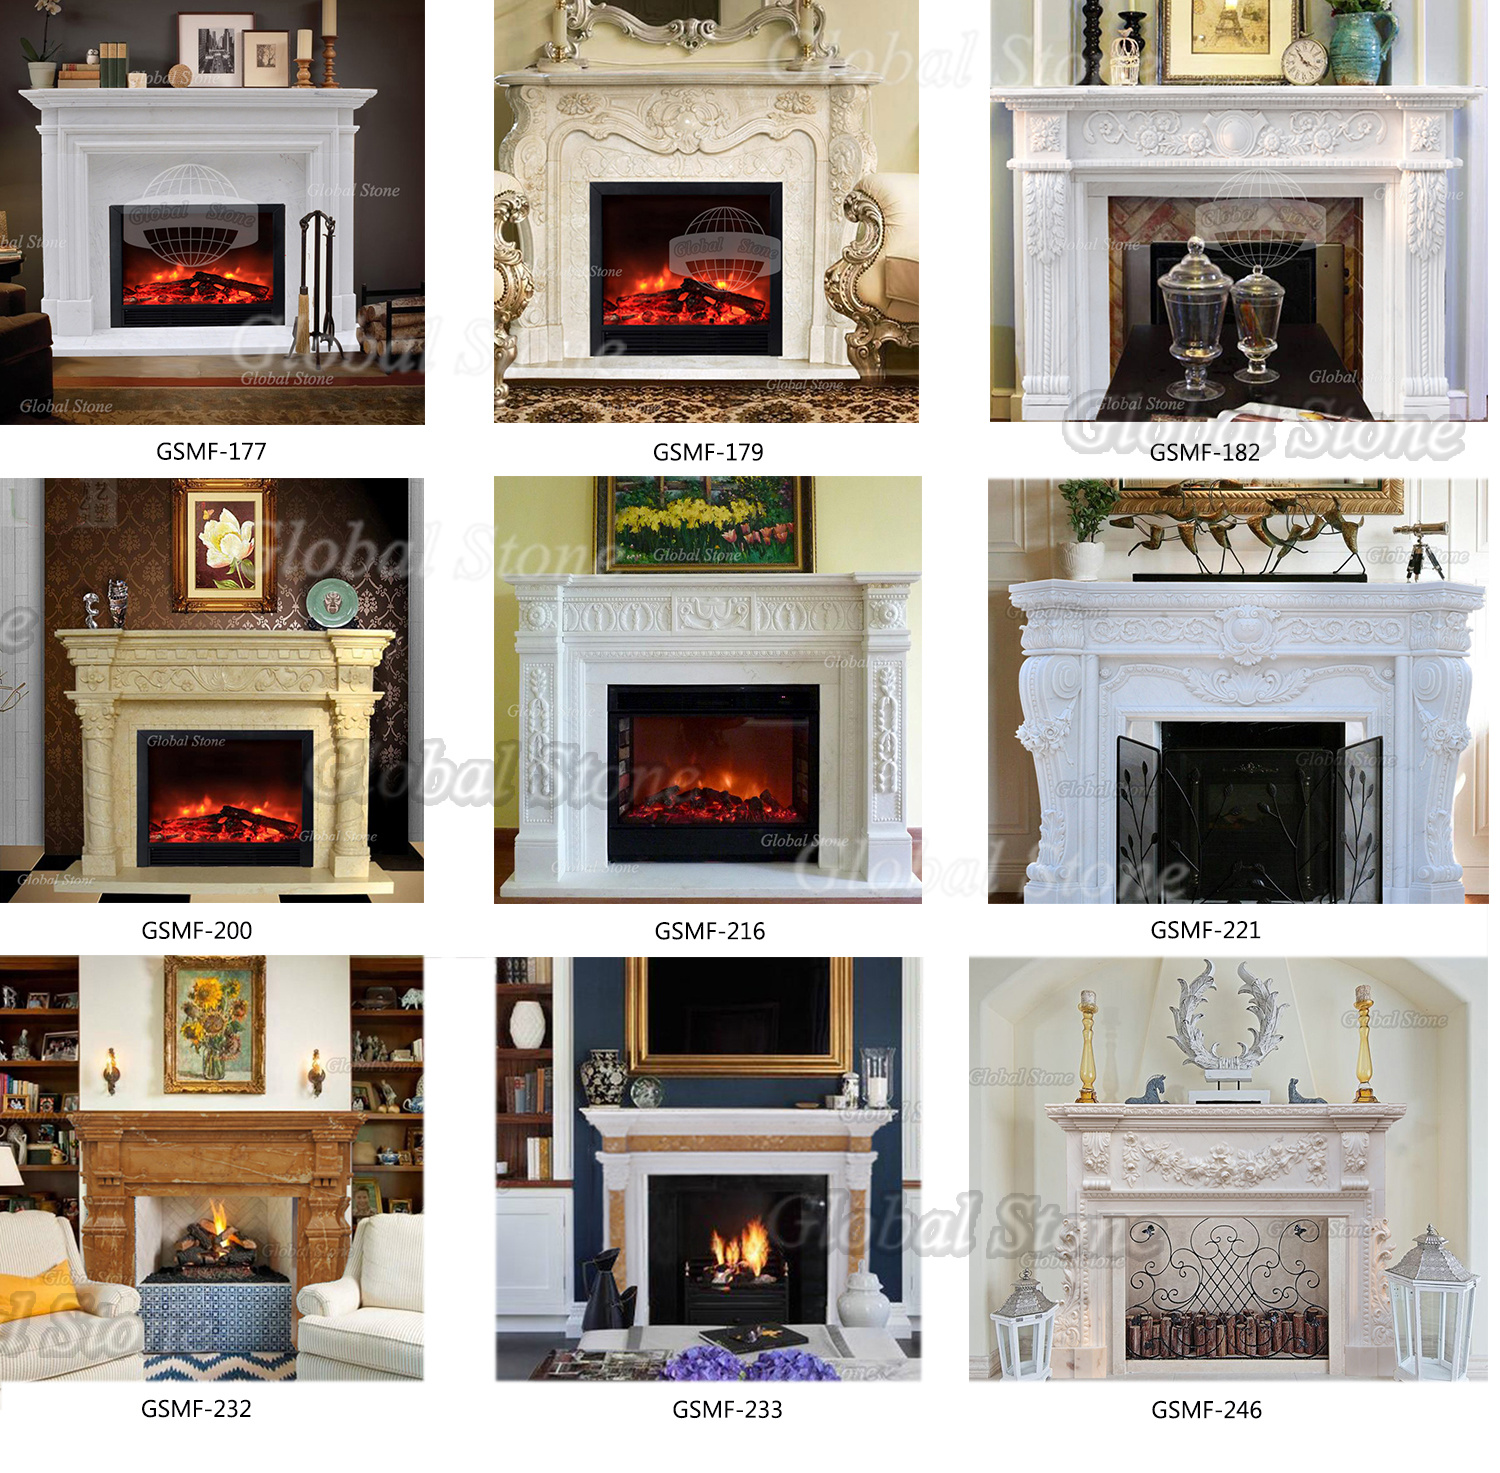 Customized White Marble Fireplace Surround Gsmf 177 China Indoor Stone Fireplace Marble Mantel Made In China Com